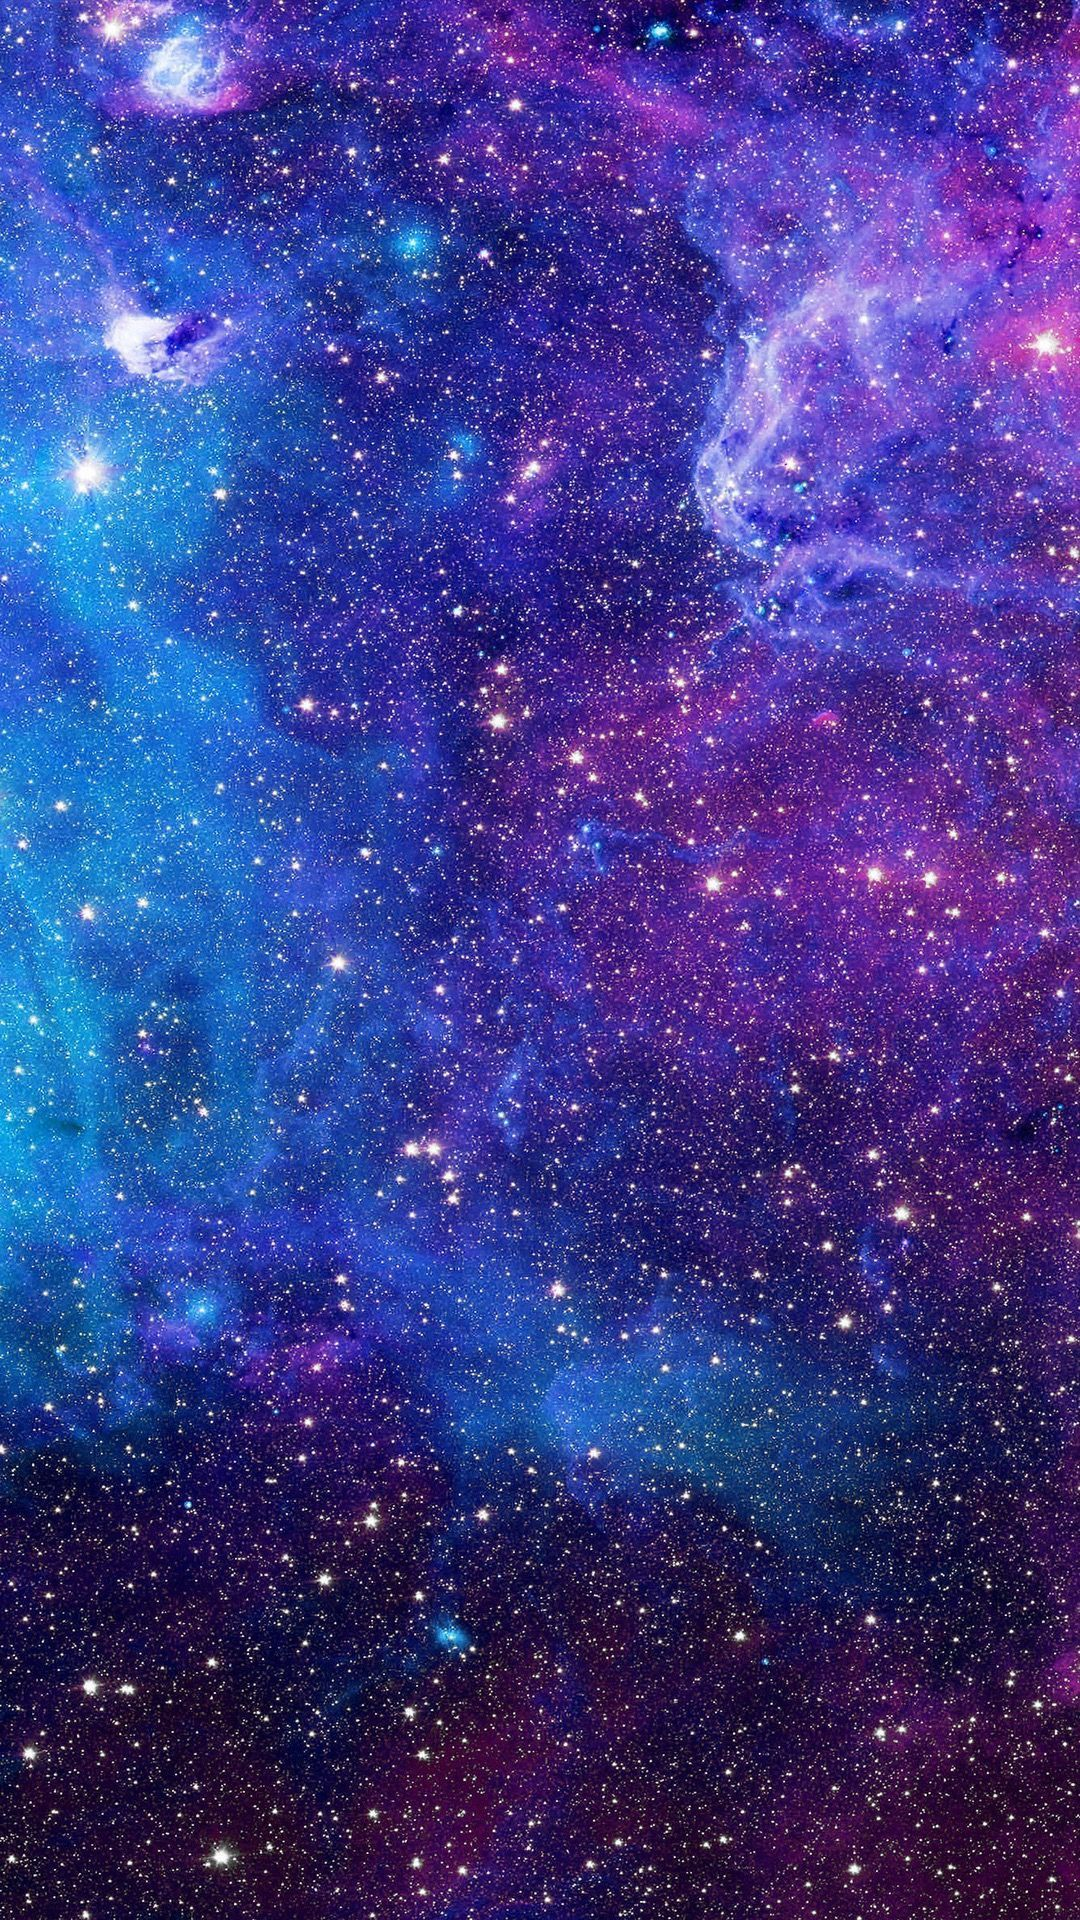 Blue Universe Hd Wallpaper Android In 2020 Purple Galaxy Wallpaper Galaxies Wallpaper Blue Wallpaper Iphone